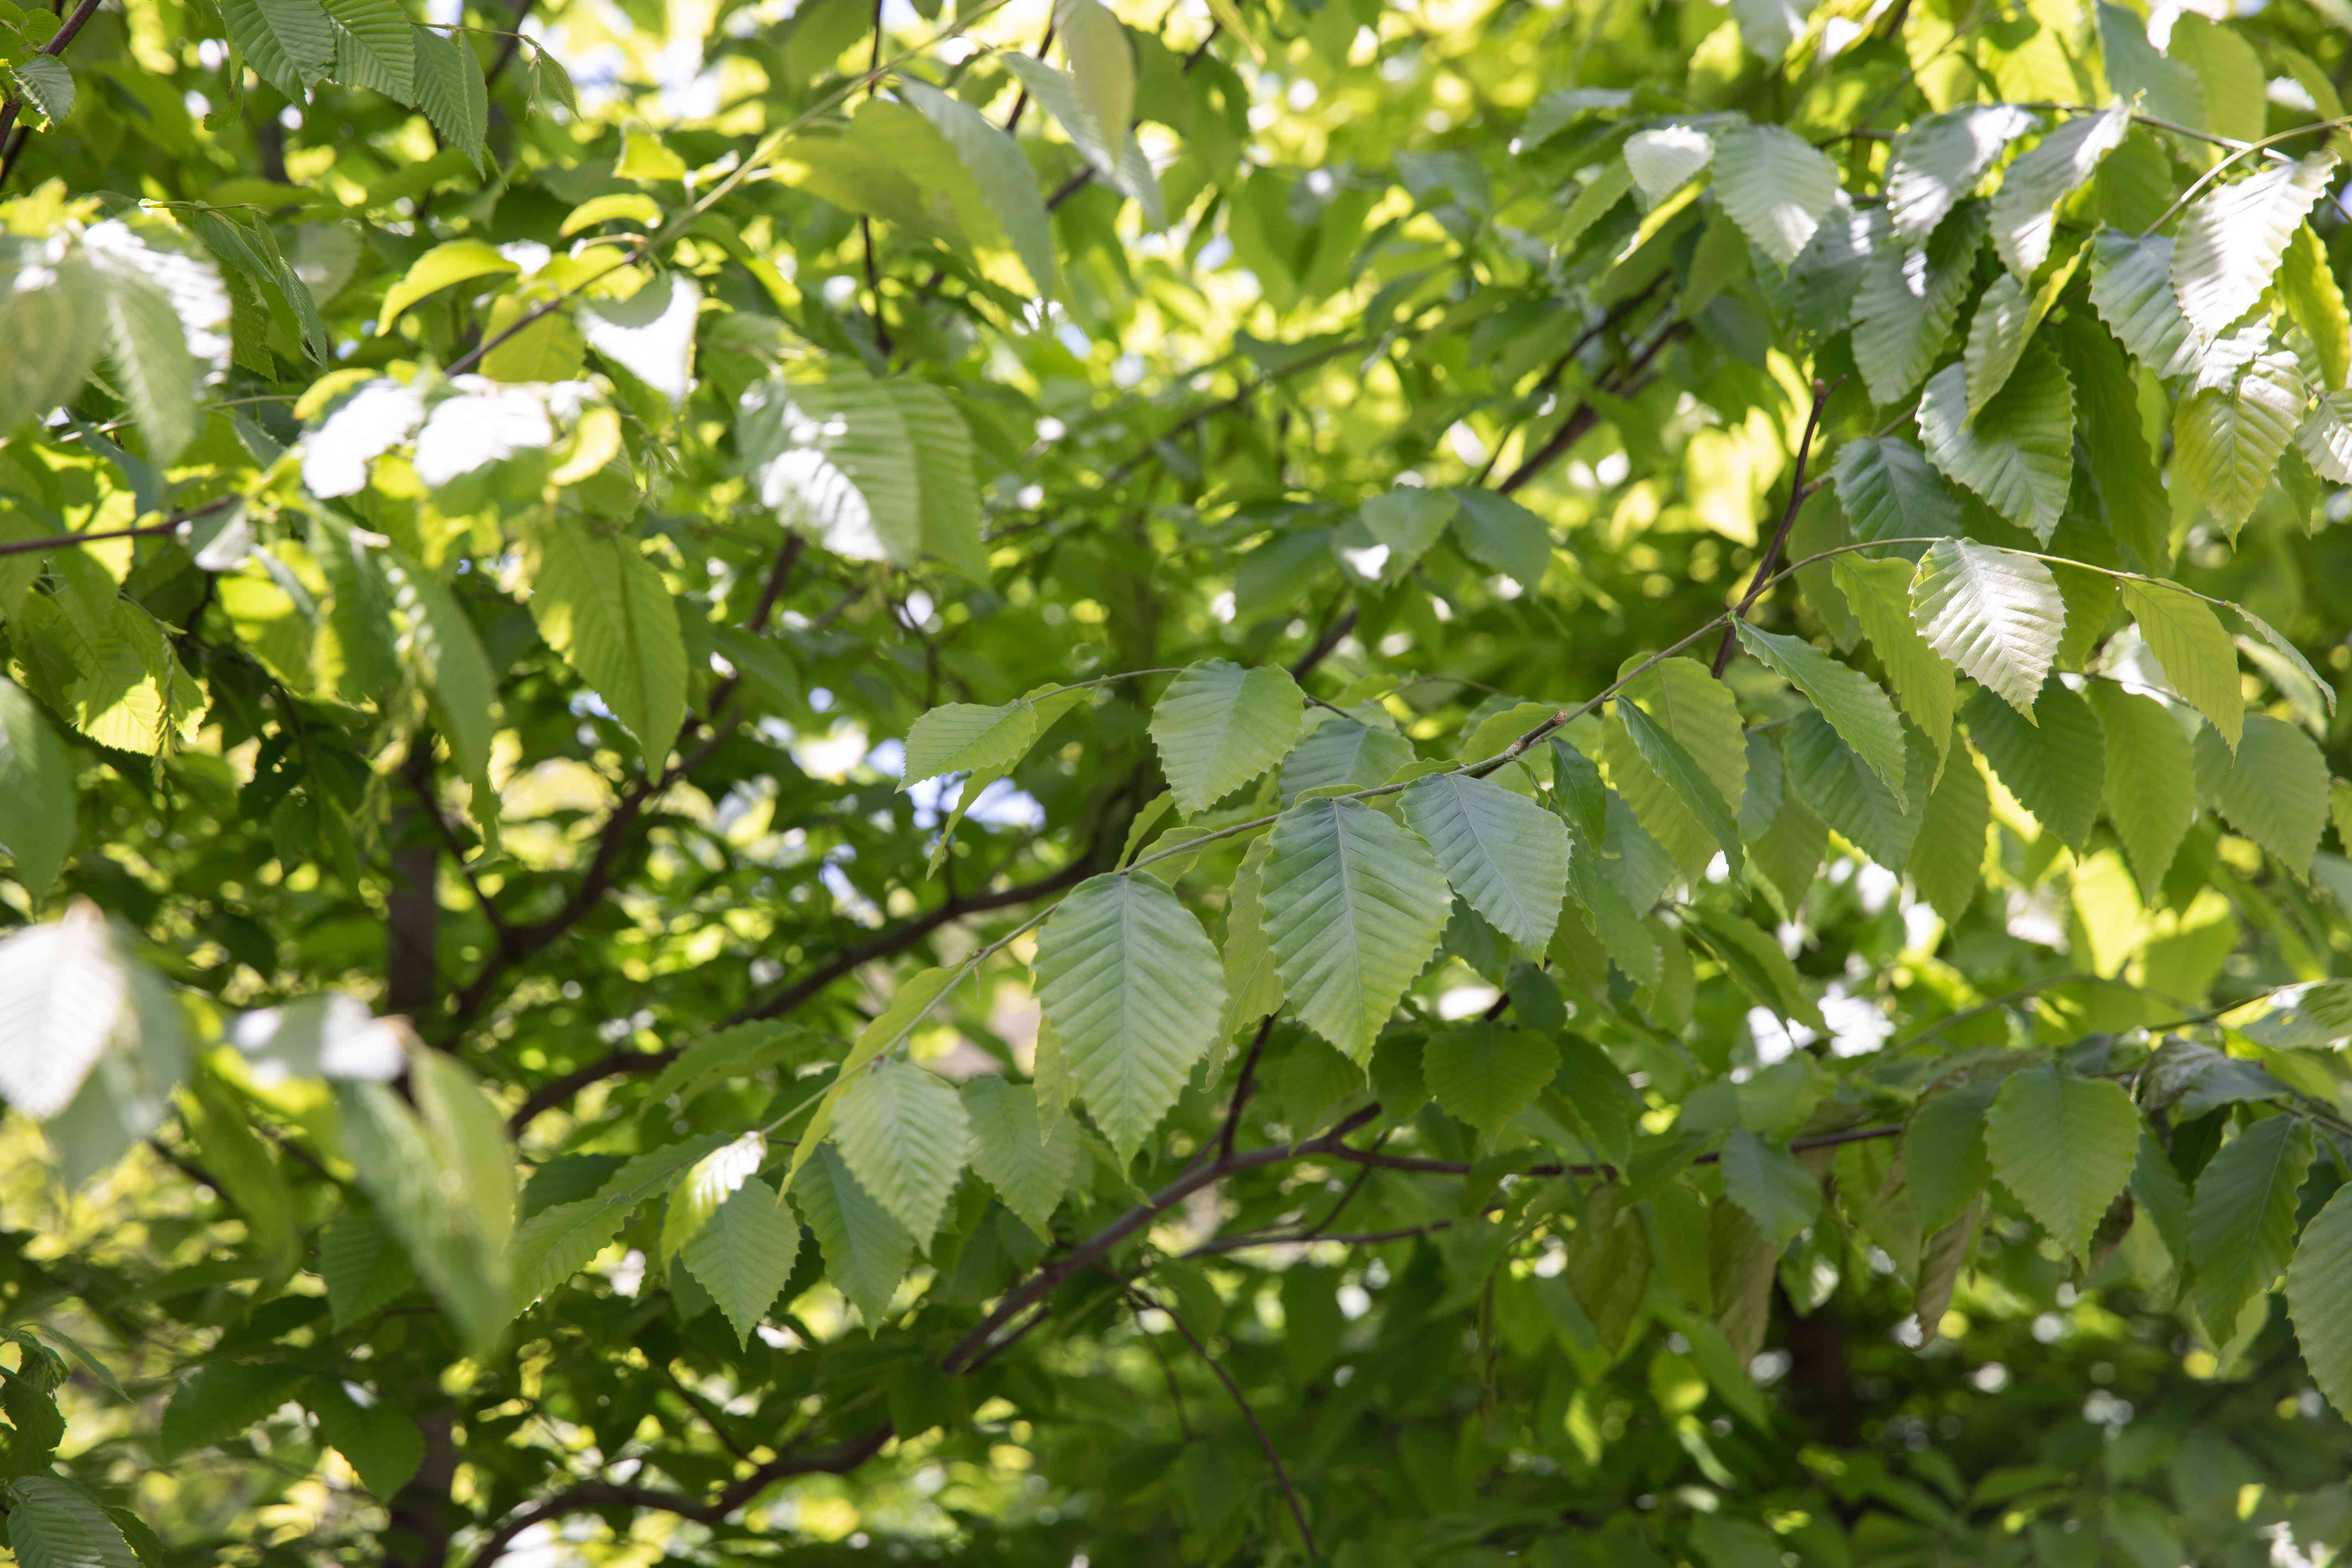 American beech tree branches and leaves